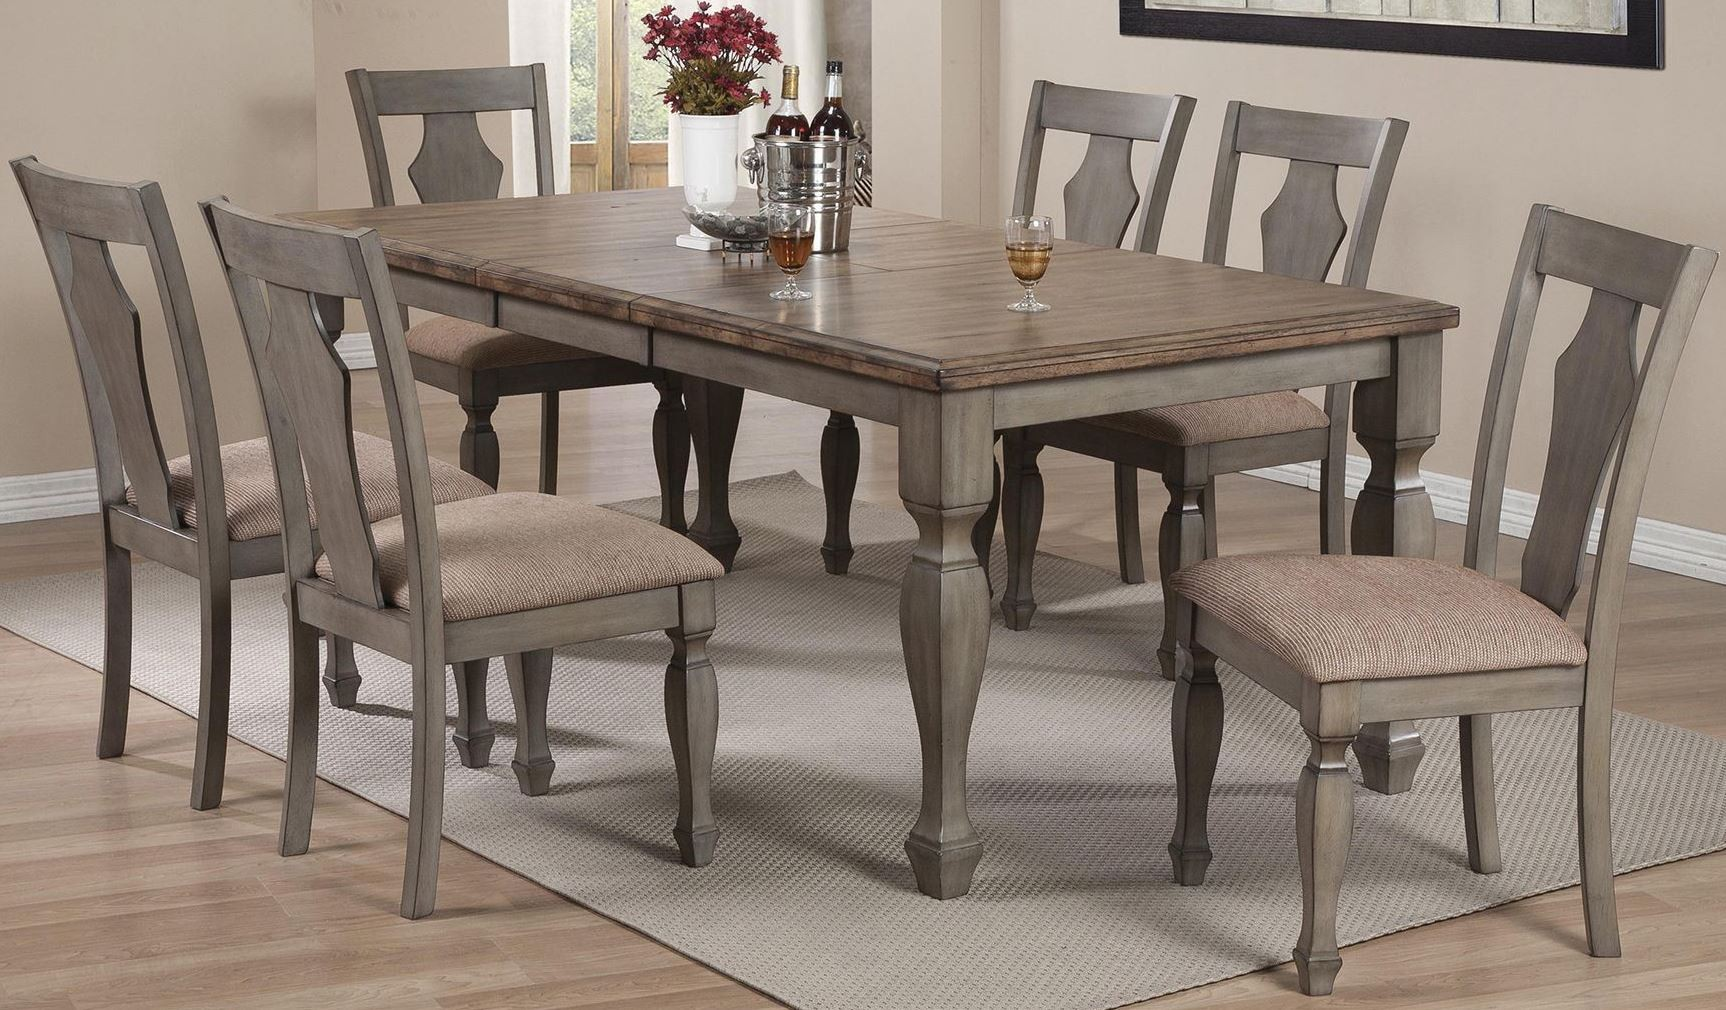 riverbend white and antique dining room set 106301 coaster furniture